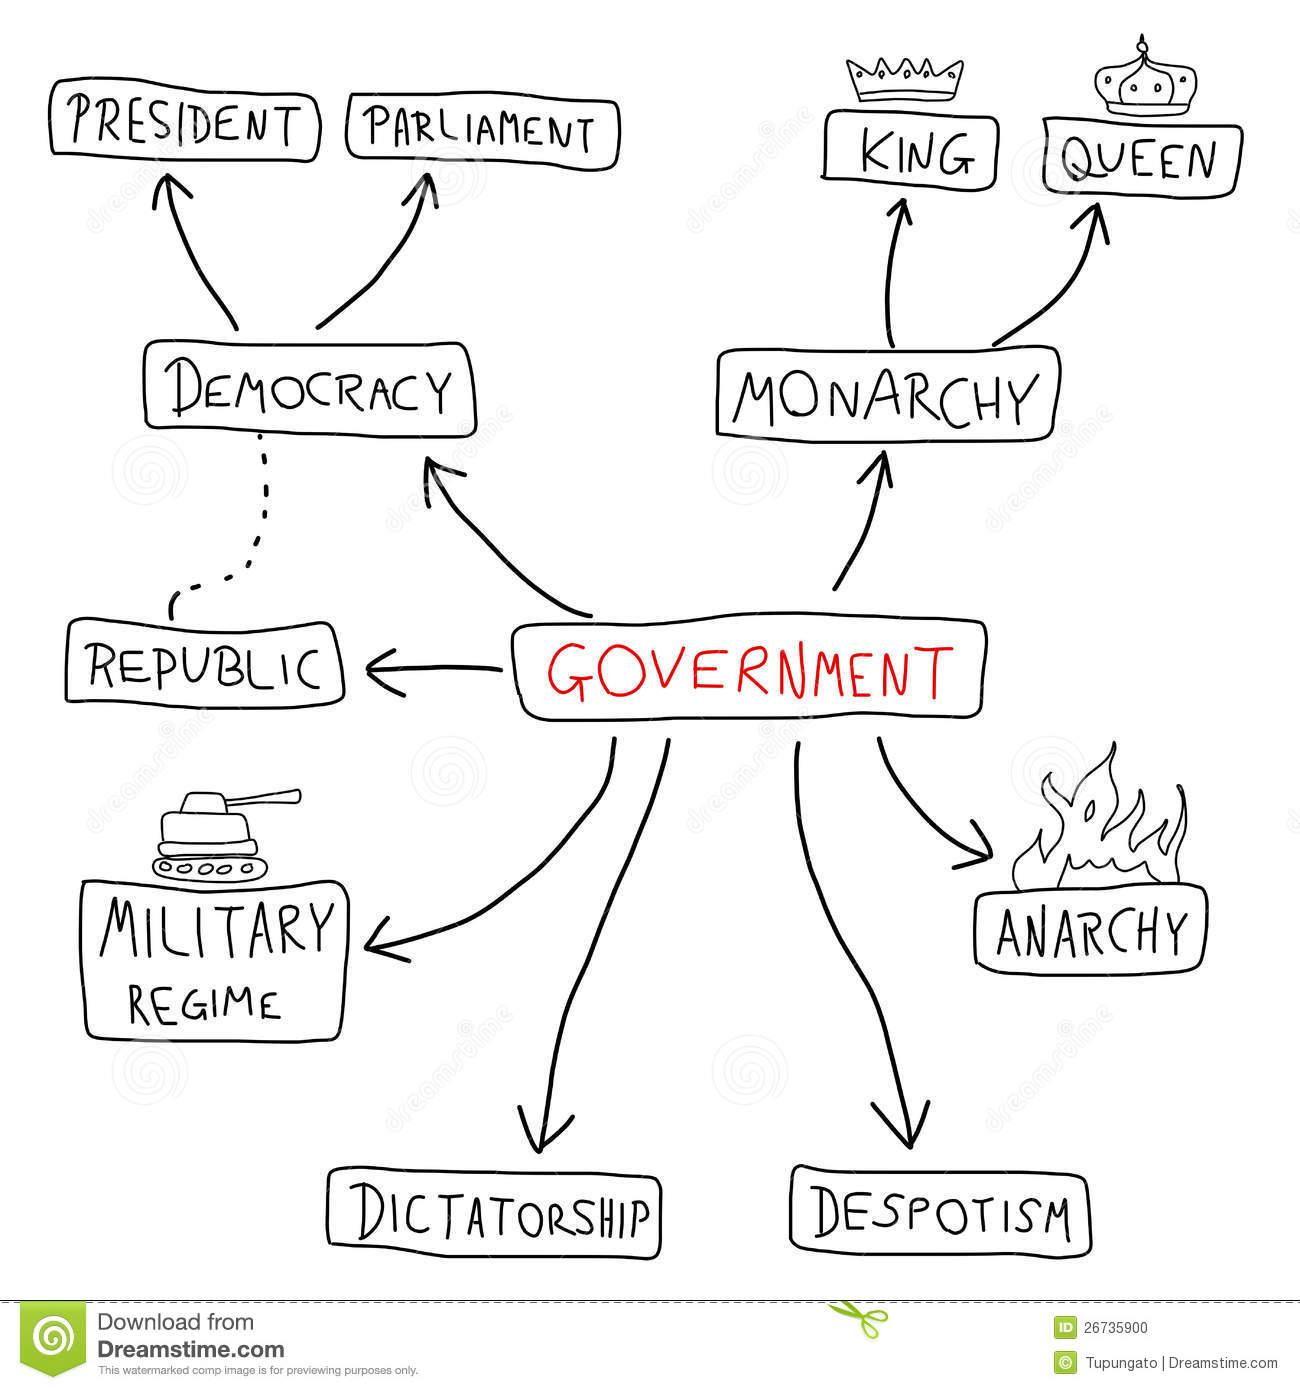 government mind map - political doodle graph with various political systems  (democracy, monarchy, dictatorship, military regime)